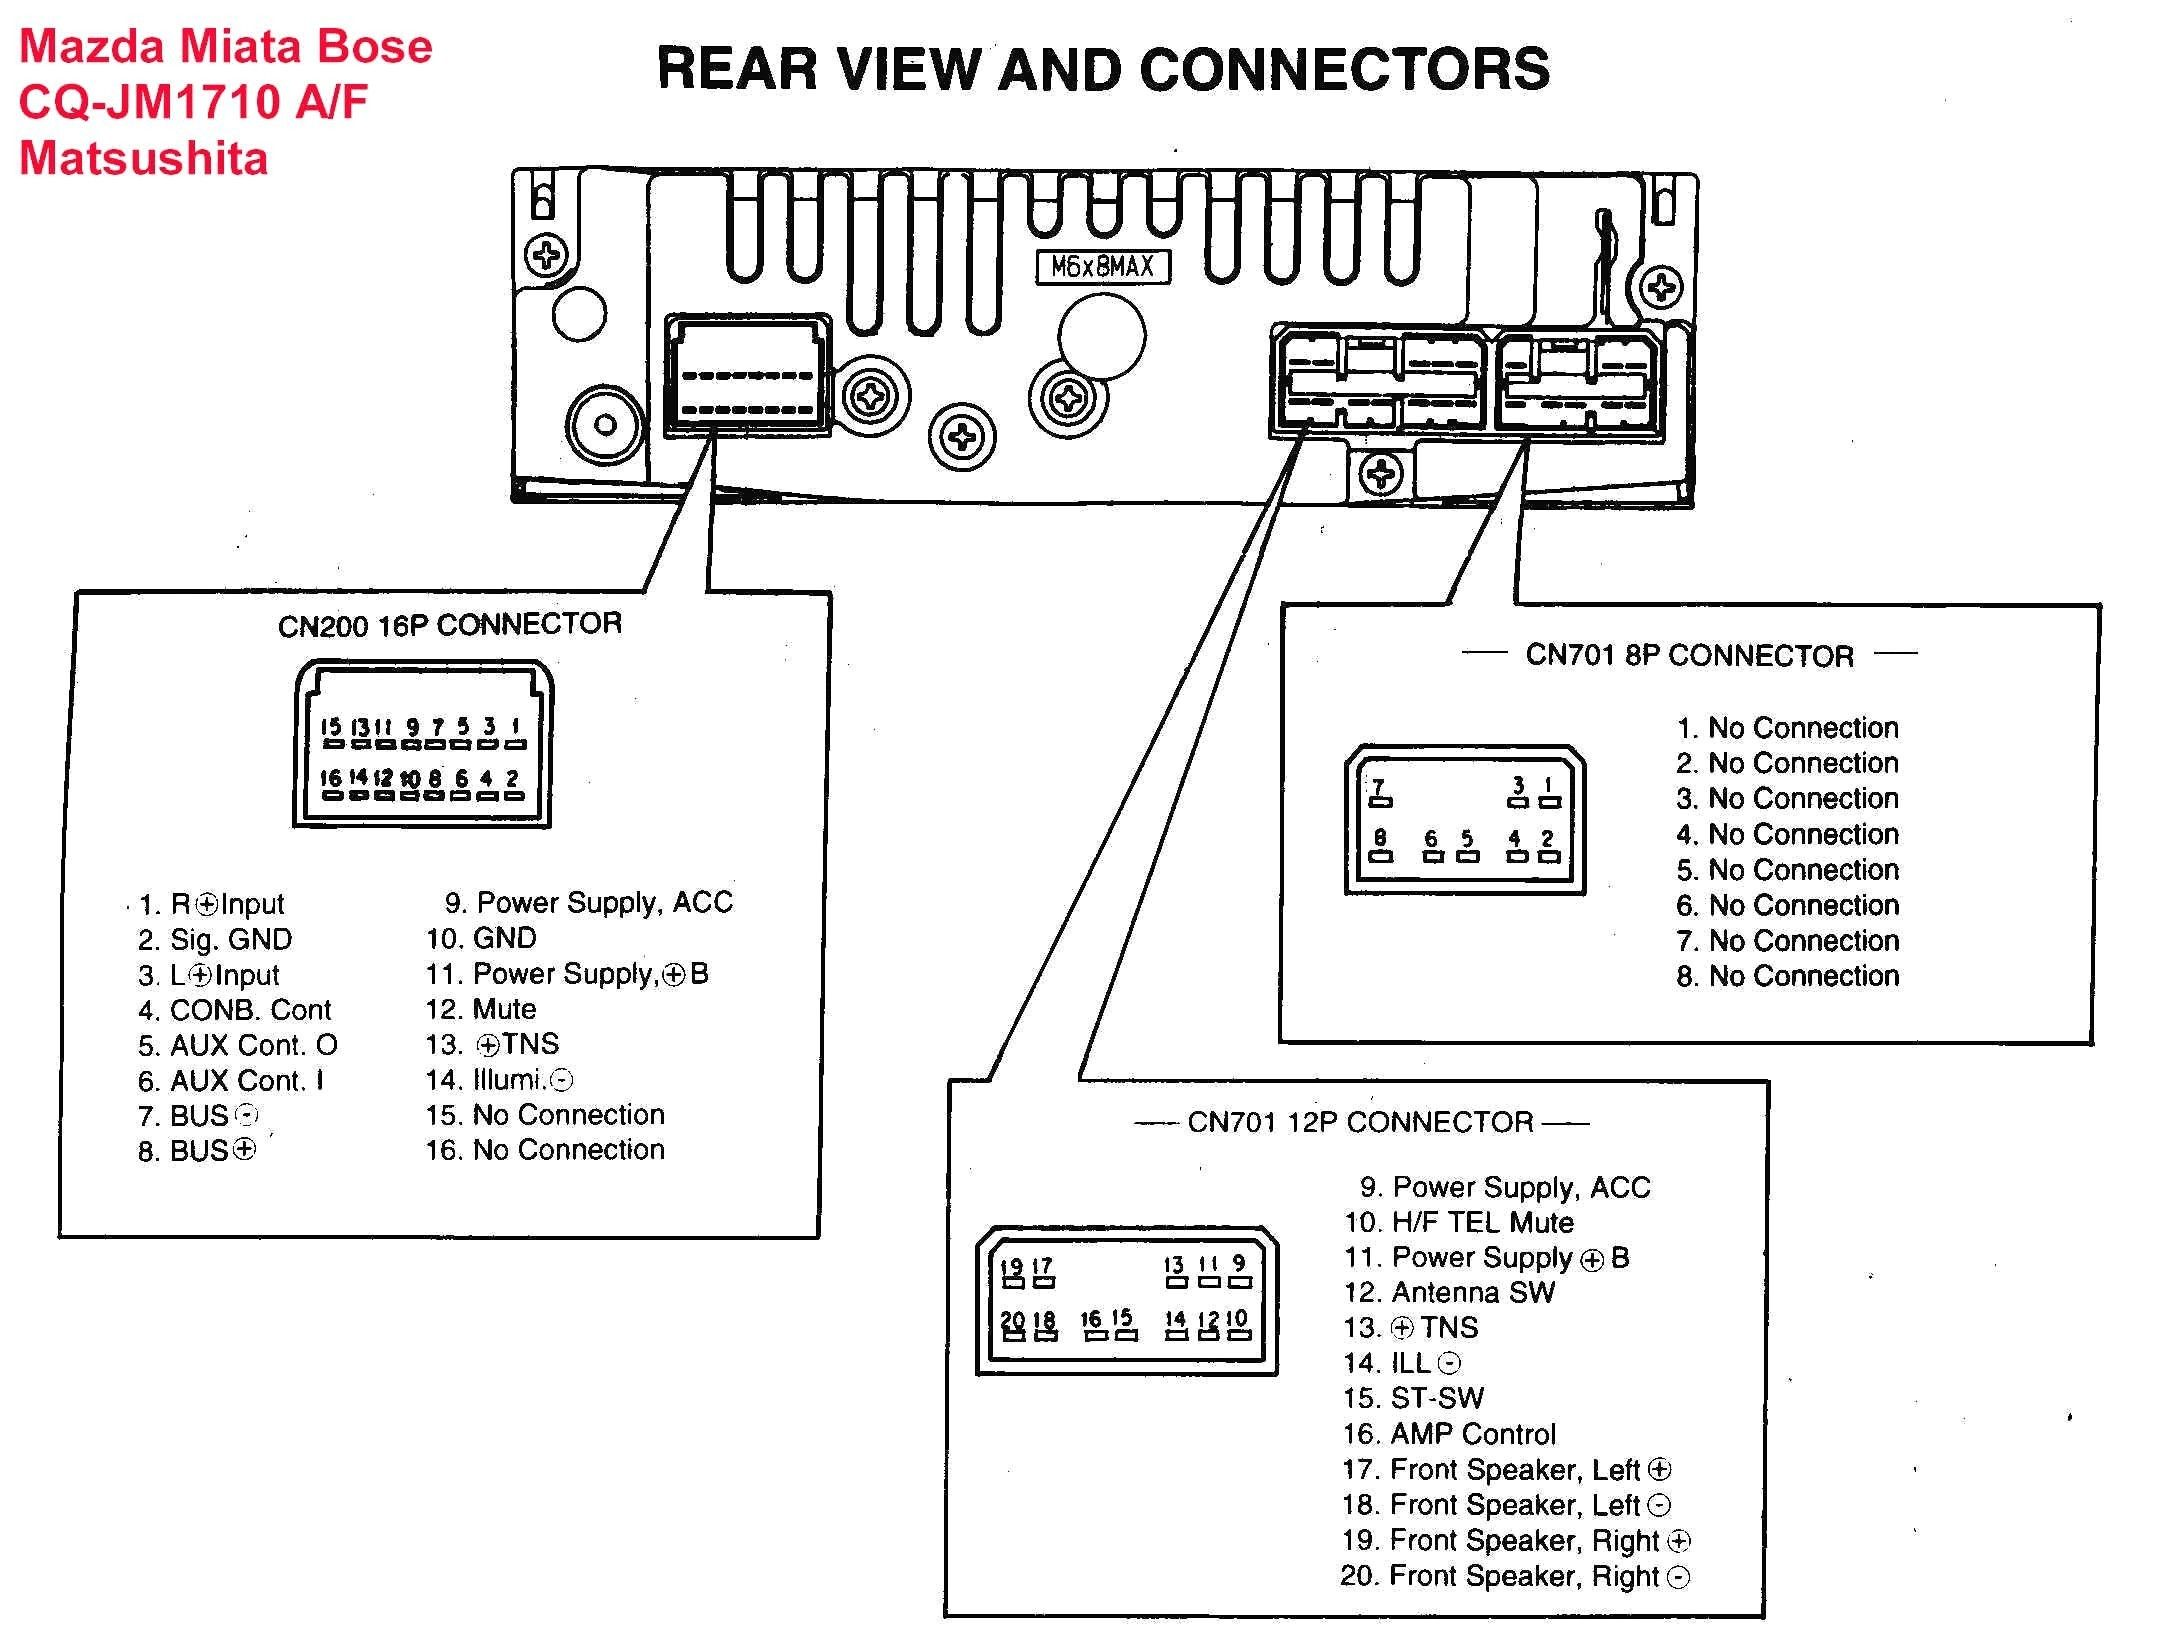 Unique Car Electrical Diagram Diagram Wiringdiagram Diagramming Diagramm Visuals Visualisation Graphic Trailer Wiring Diagram Car Stereo Sony Car Stereo